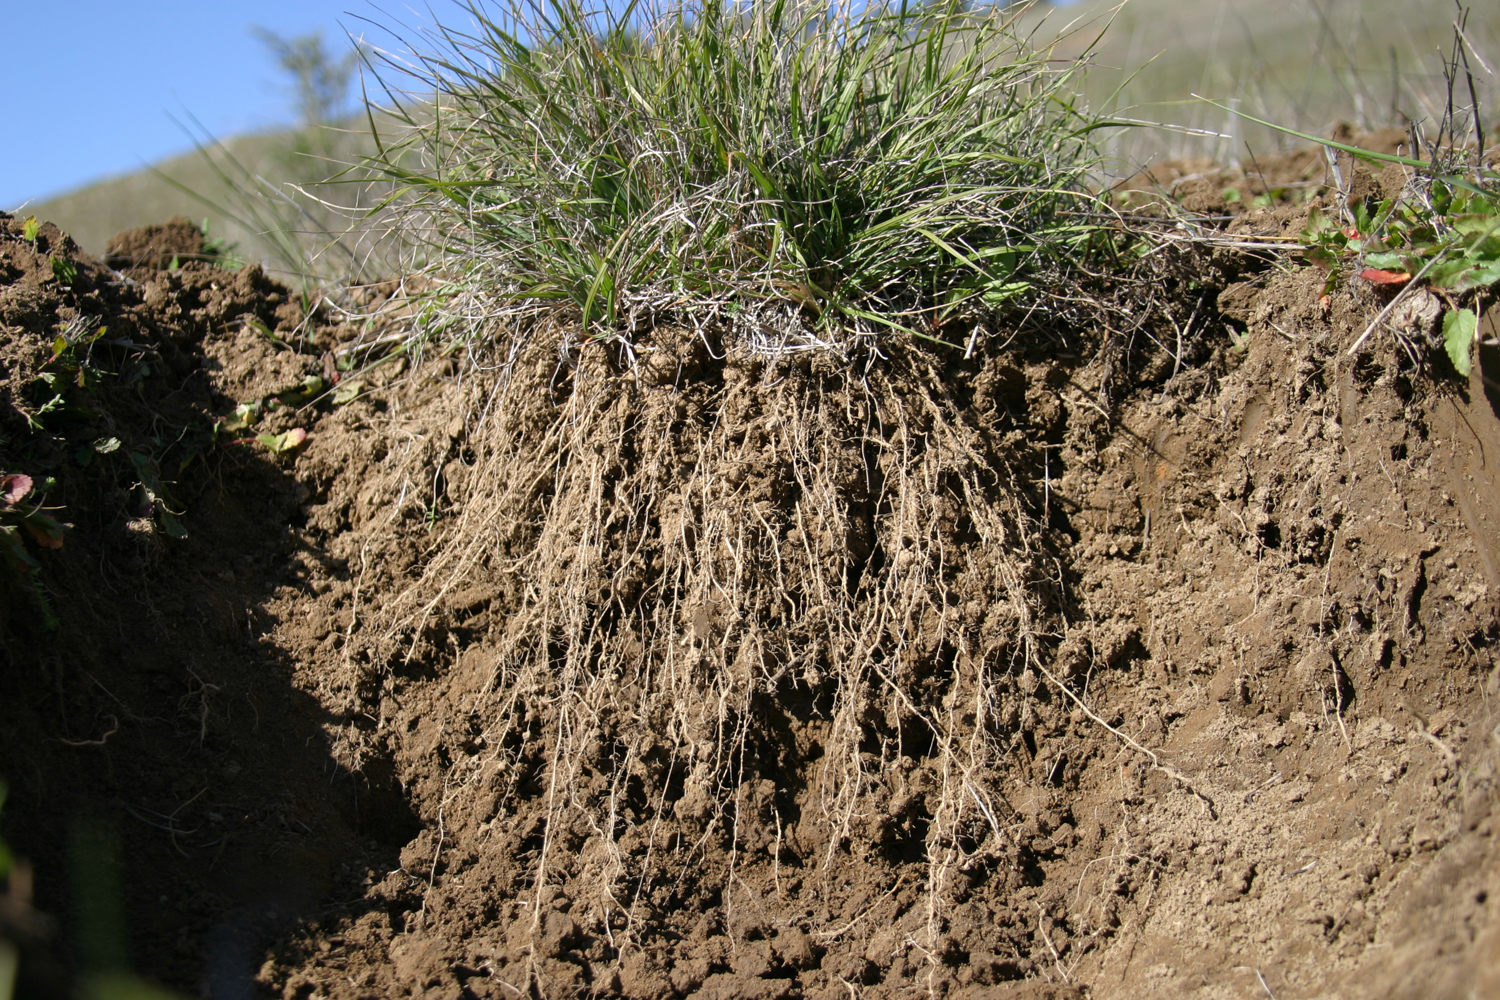 There is too much carbon in the air and too little in the soil!